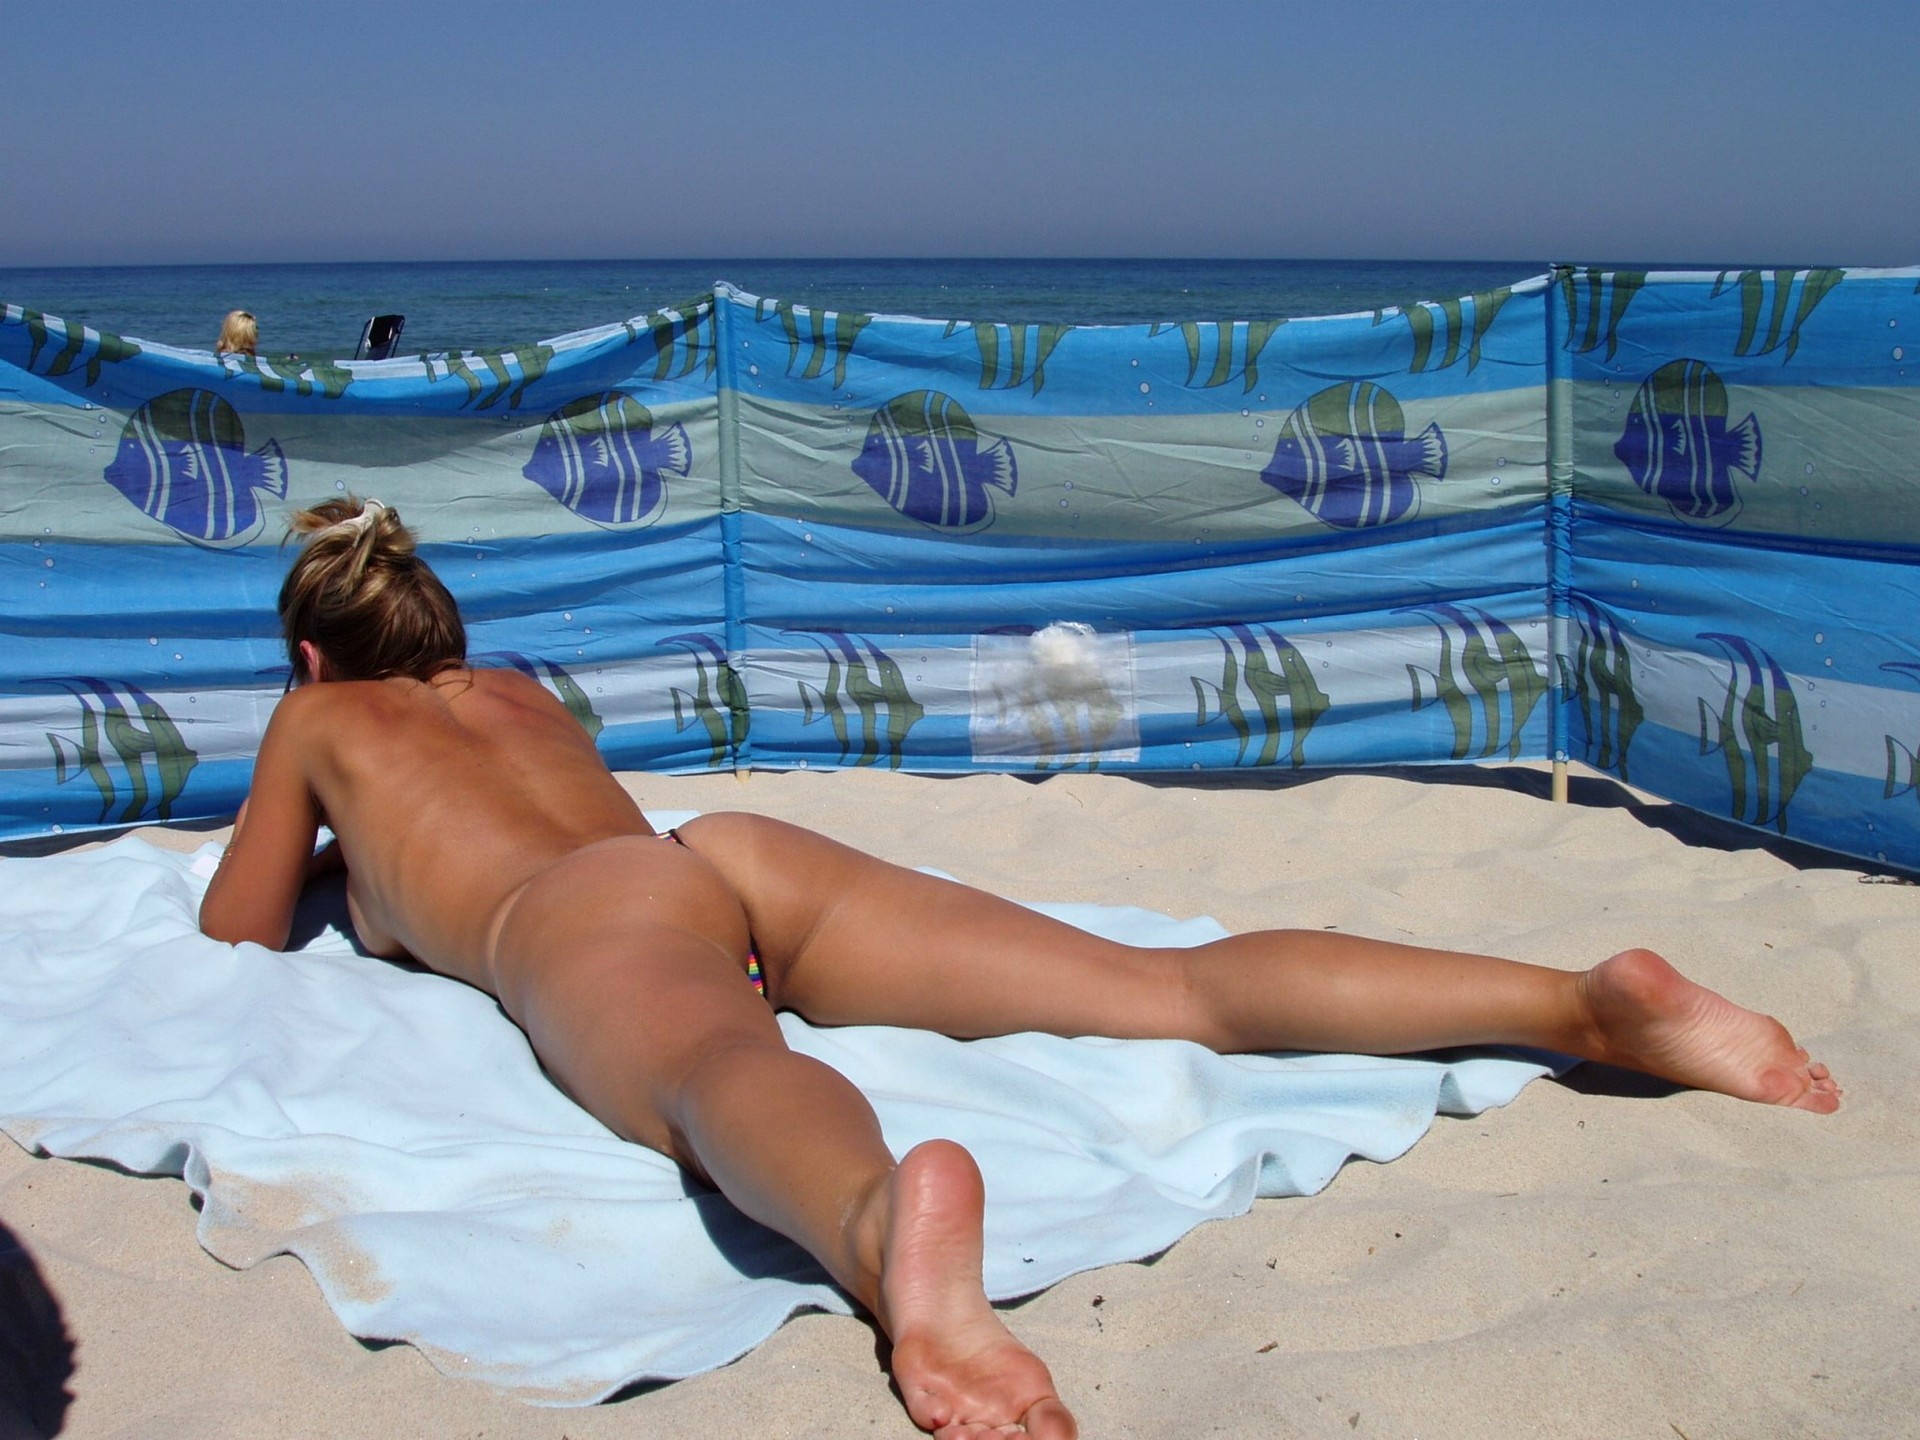 Ass Pics Watch Hot Ass Milf Beach Instructor Get Her Pussy Pounded On The